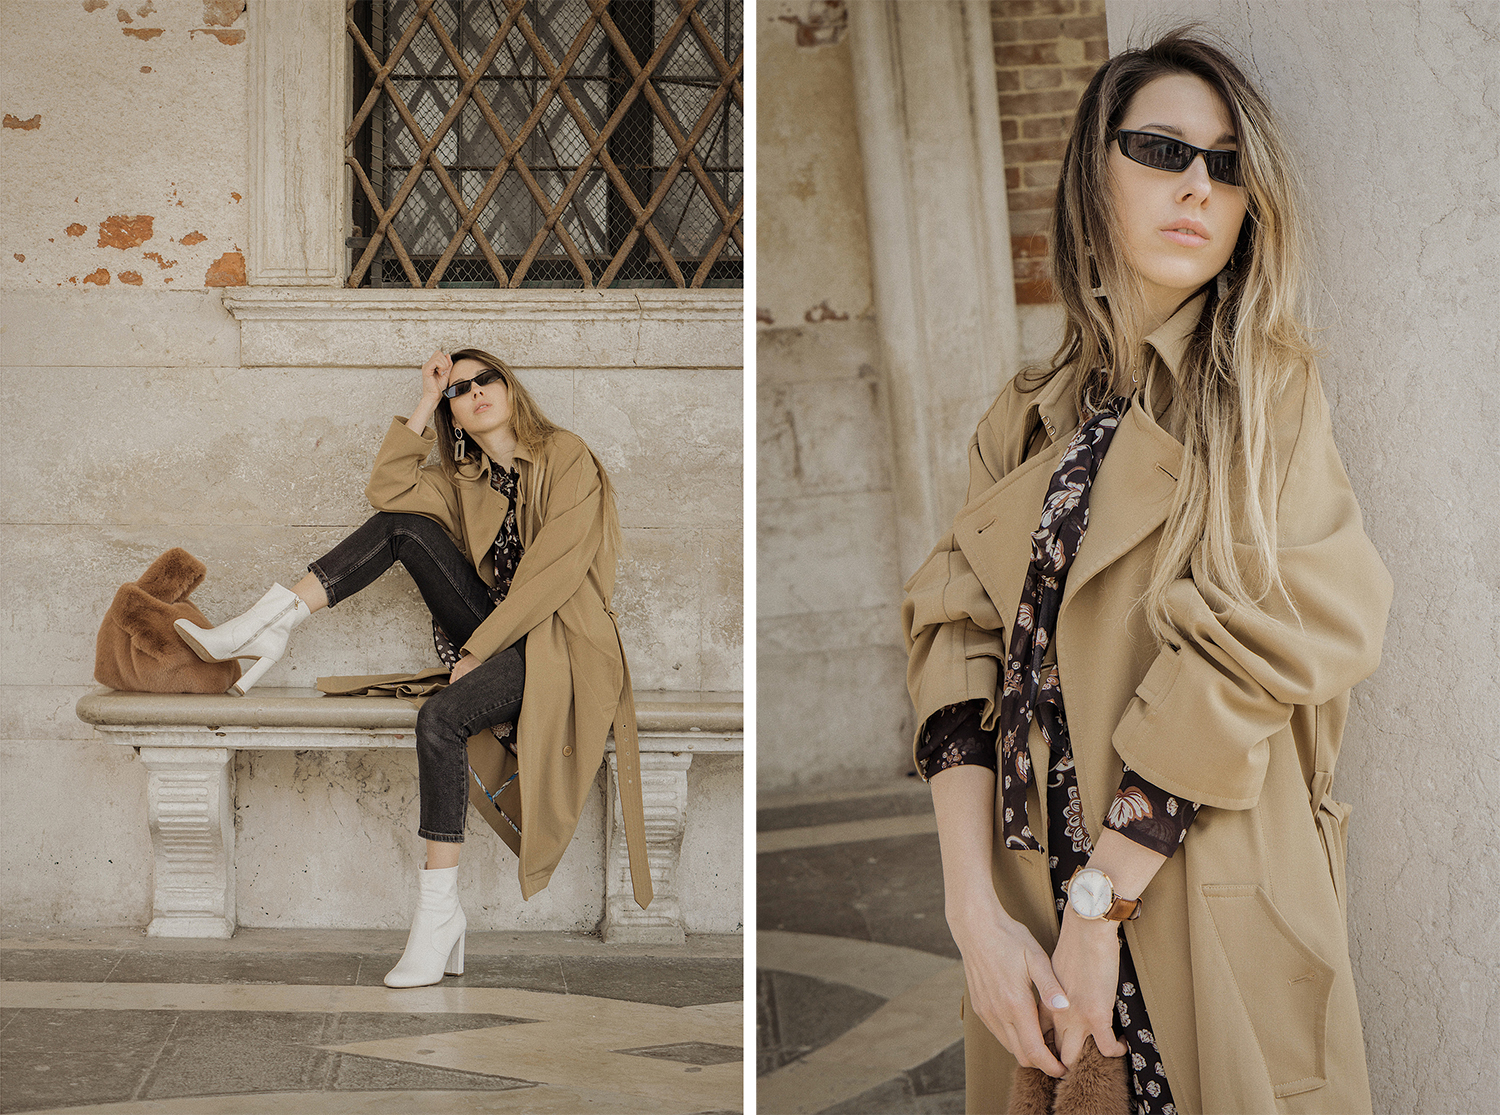 trench_coat_white_boots_dress_with_jeans_venice_italy_fur_bag_fashion_lenajuice_thewhiteocean_06